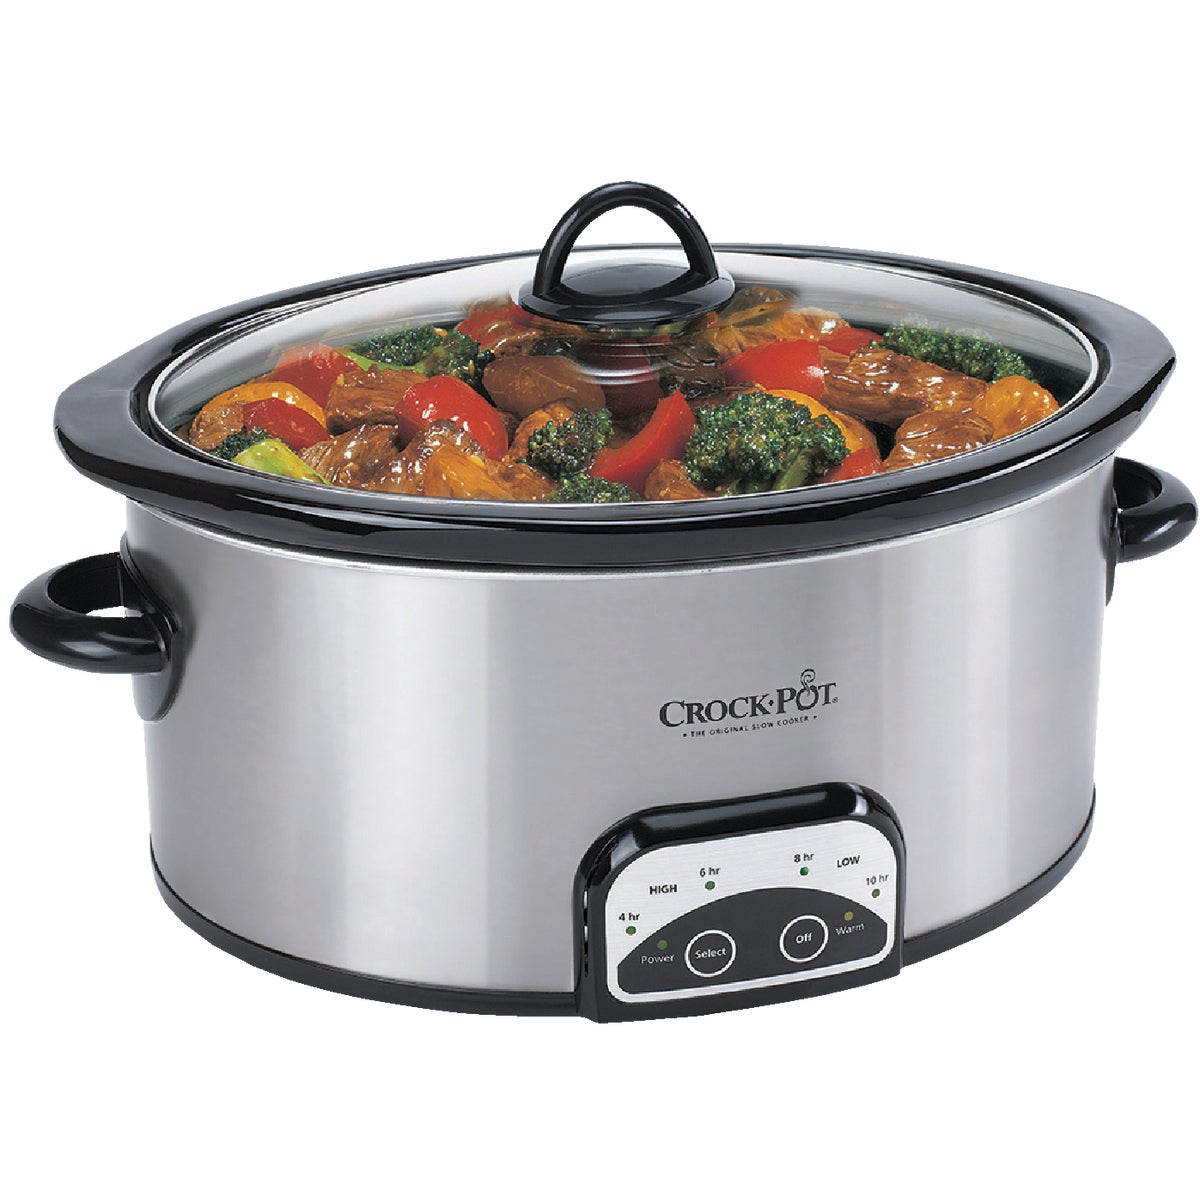 4QT SMRT POT SLOW COOKER